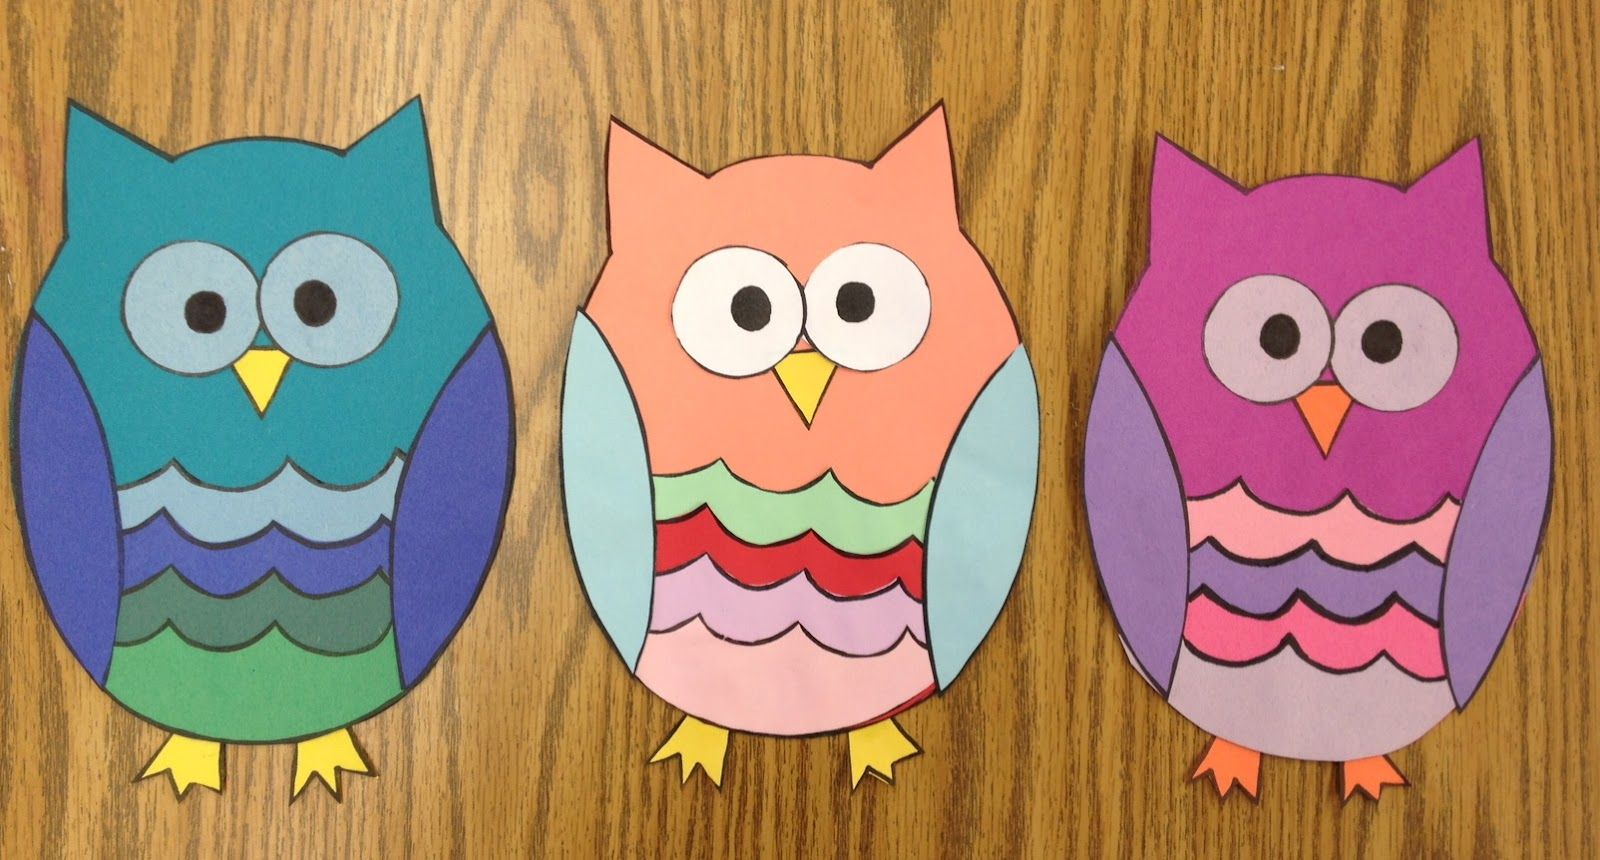 Kindergarten was a hoot bulletin board apples and abcs kindergarten was a hoot bulletin board jeuxipadfo Image collections